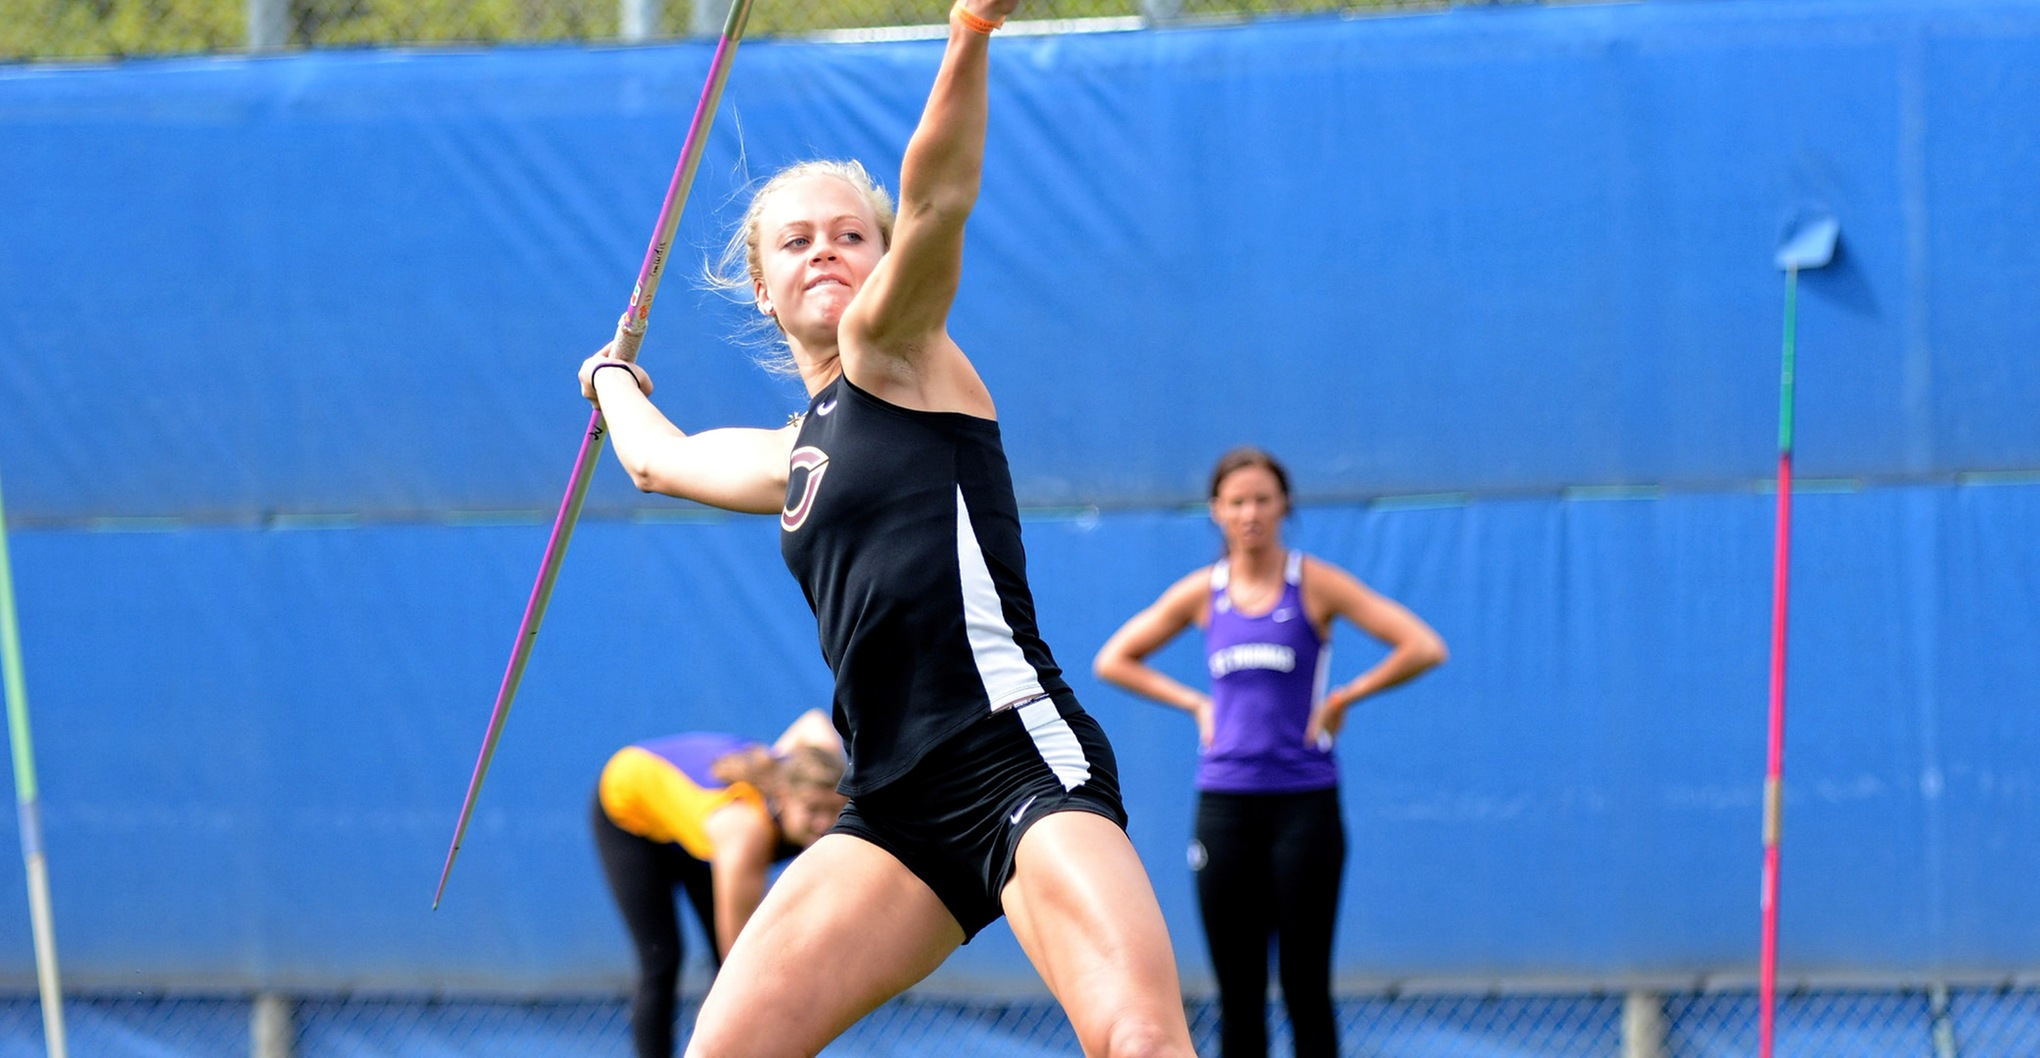 Senior Mikayla Forness kicked off the outdoor season by winning the javelin competition at the St. Benedict Outdoor Invitational.